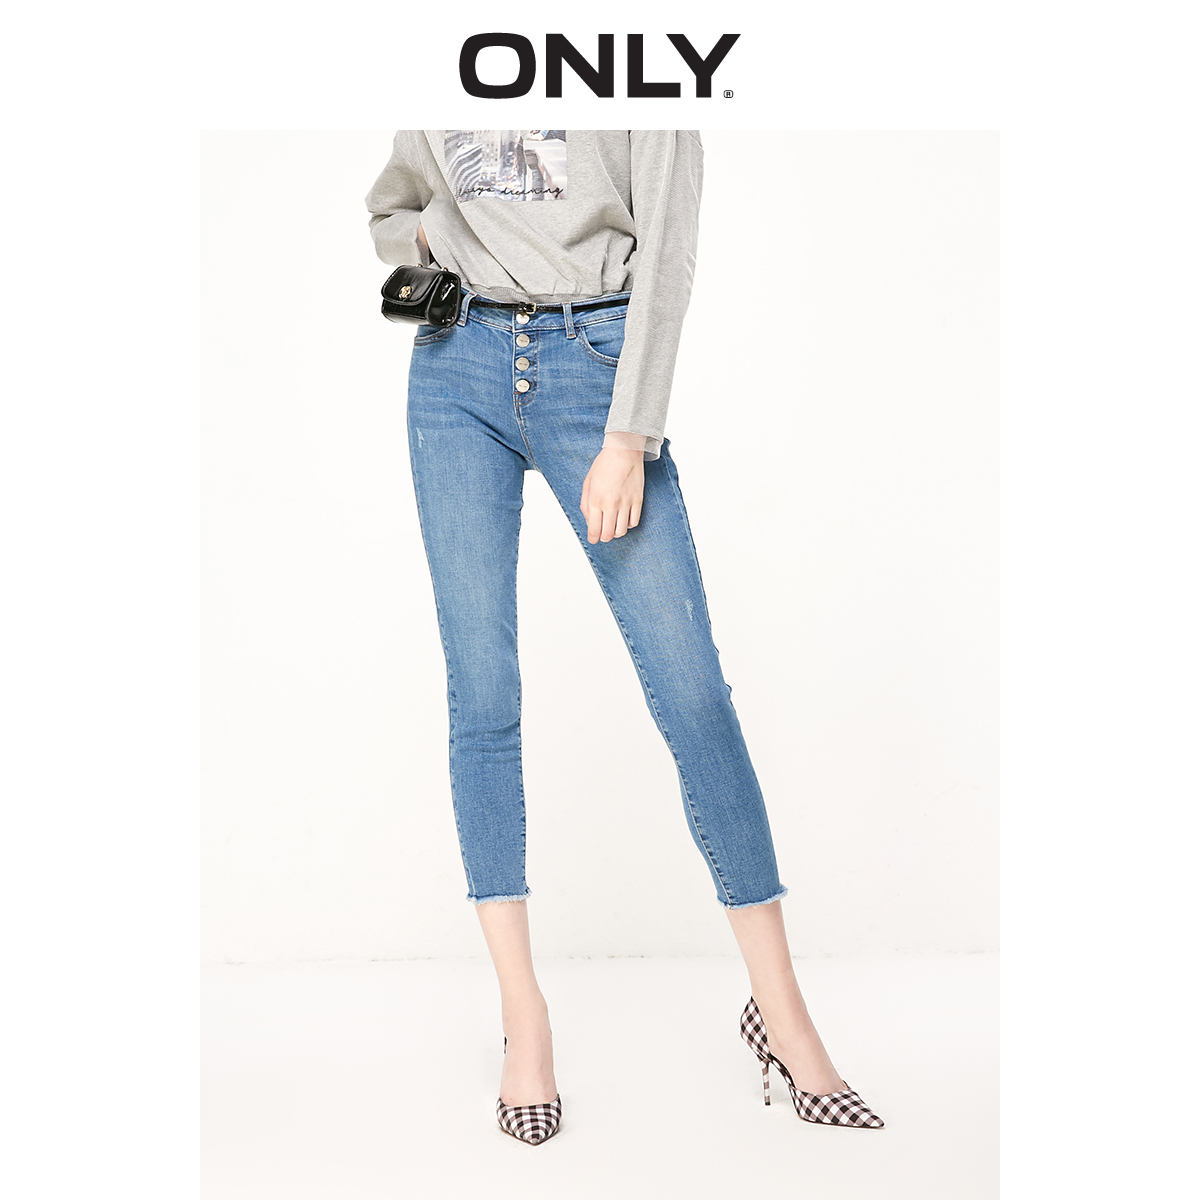 ONLY Women's Low-rise Skinny Multiple Buttons Crop Jeans | 119149620